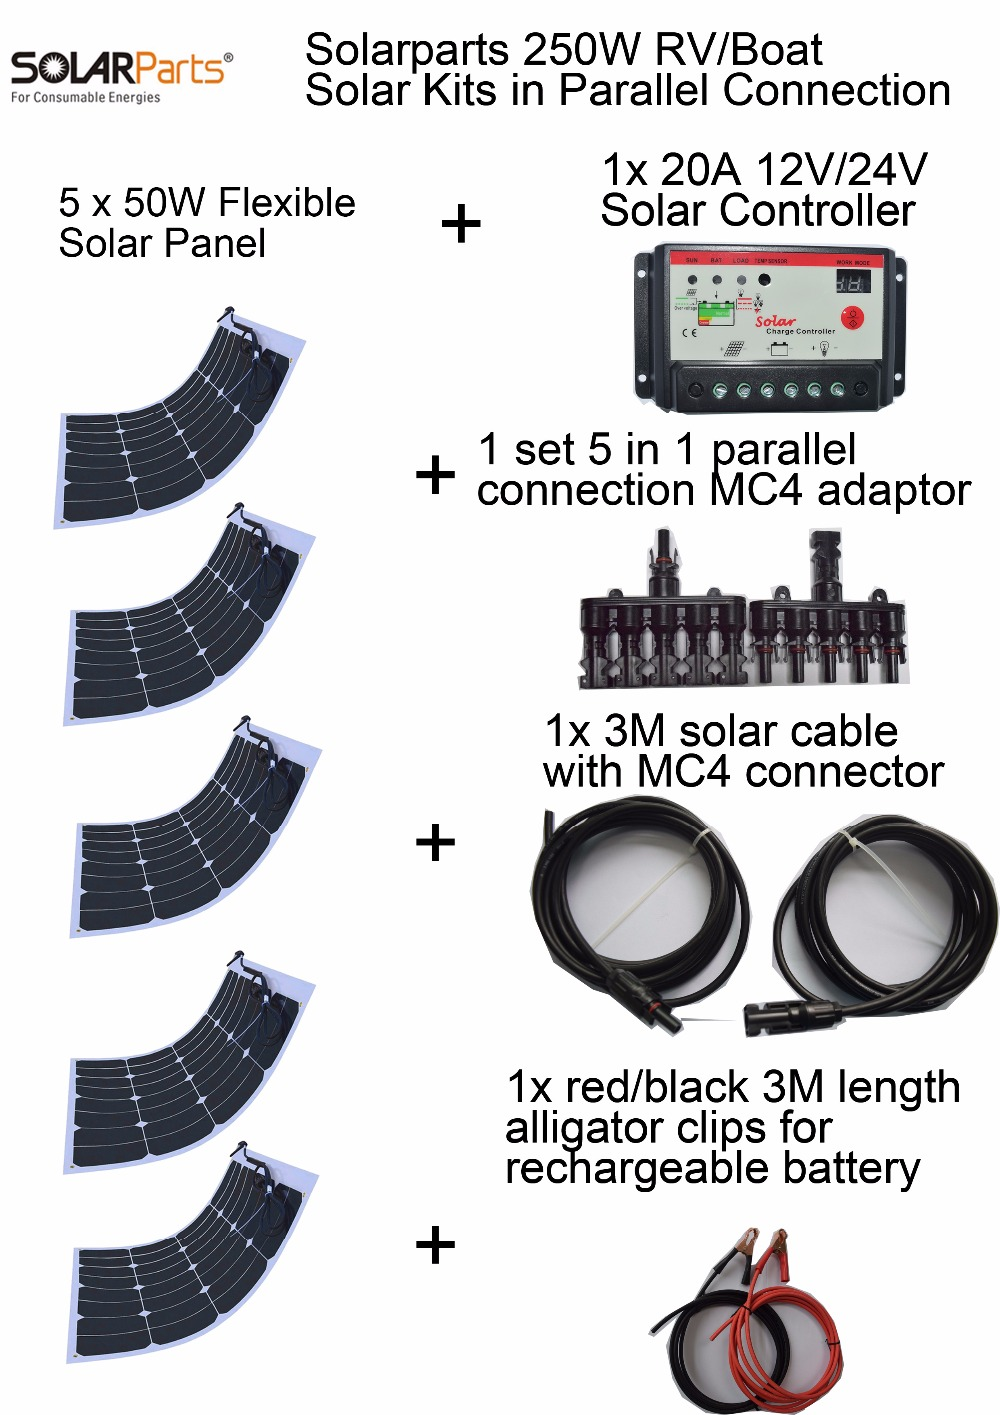 BOGUANG 250W 20V efficient solar Kits system 5pcs 50W flexible solar panel 20A solar controller 1set 5 in 1 connector full cable energy efficient system for solar panel